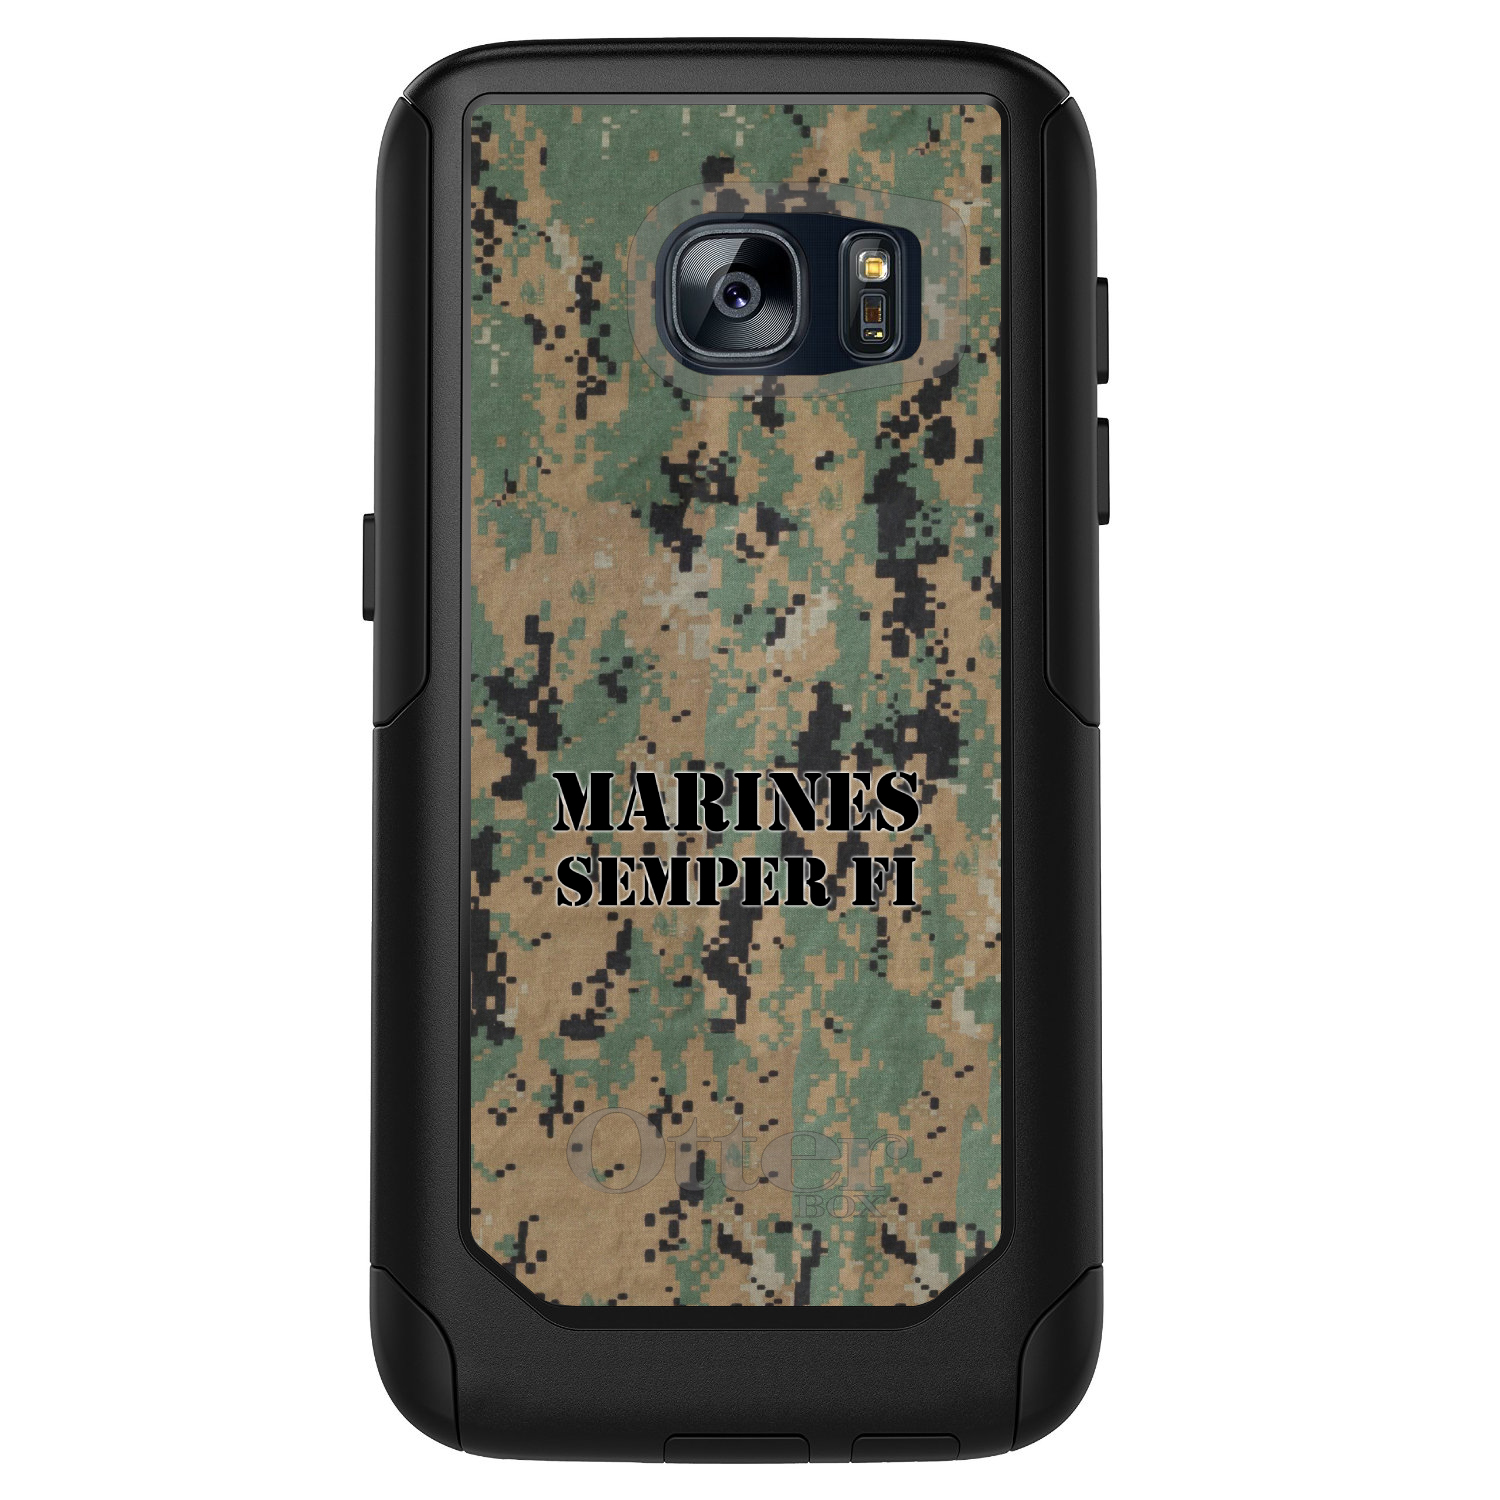 DistinctInk™ Custom Black OtterBox Commuter Series Case for Samsung Galaxy S7 - Camo Marines Semper Fi